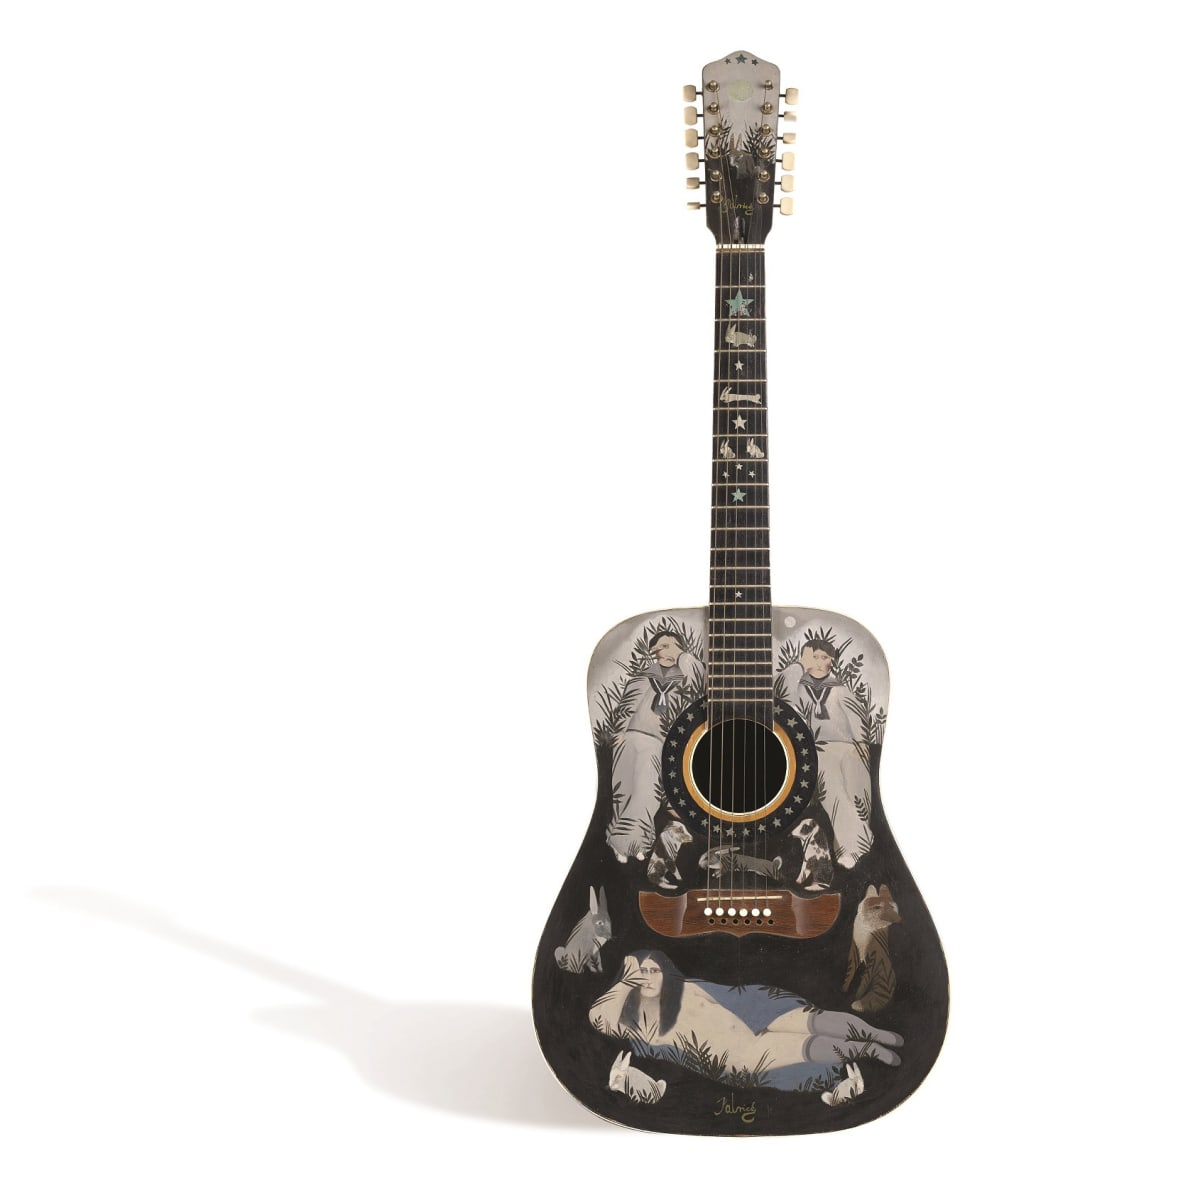 John Byrne Hand painted guitar, 1968 signed 'Patrick' on head and reverse oil 43 x 15 x 4 1/4 inches